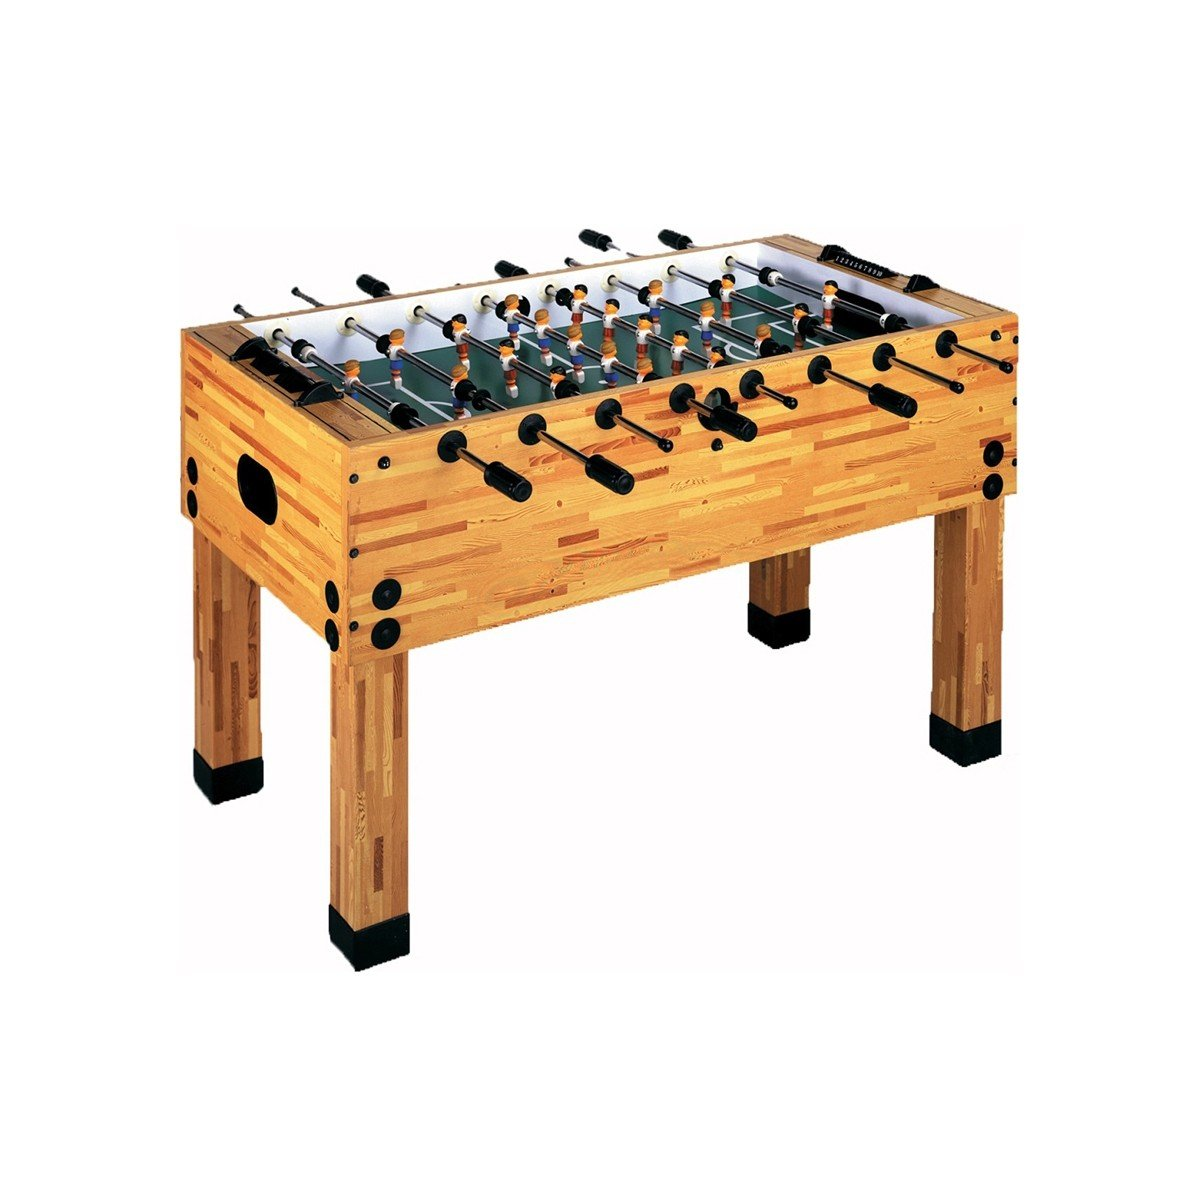 Imperial Butcher Block Foosball Table - Gaming Blaze